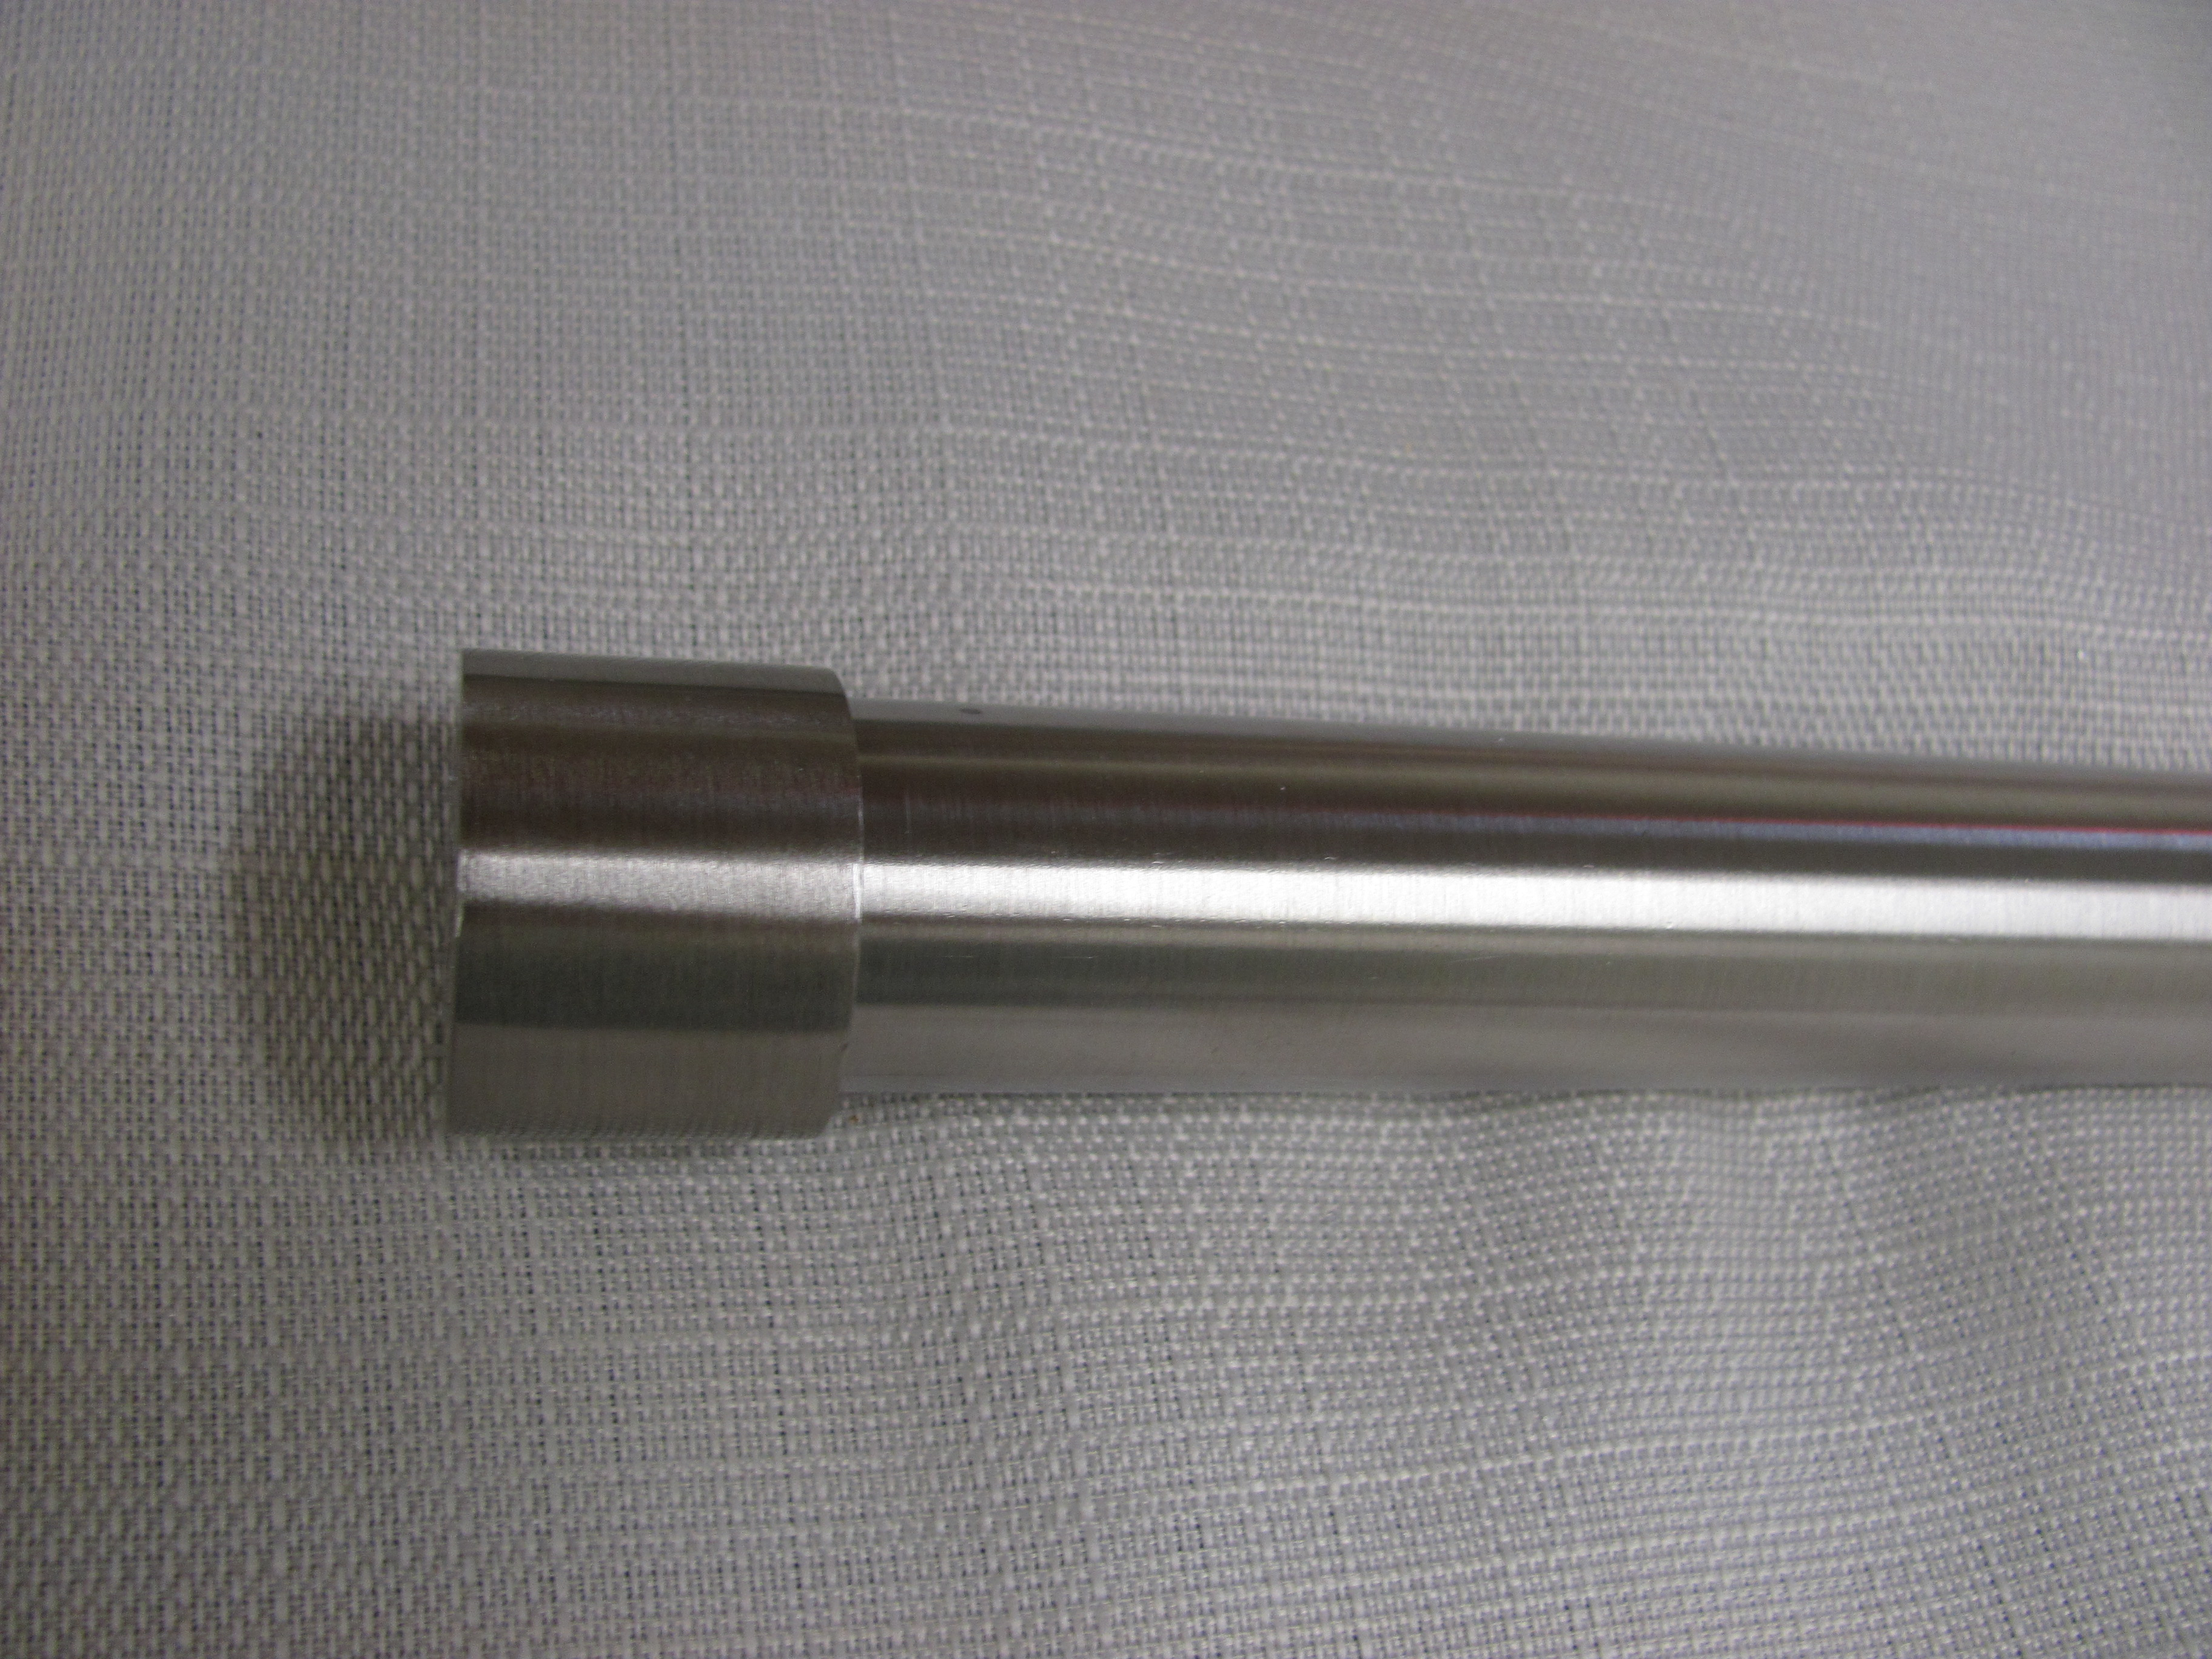 1 Inch Brushed Nickel with Brushed Nickel End Cap